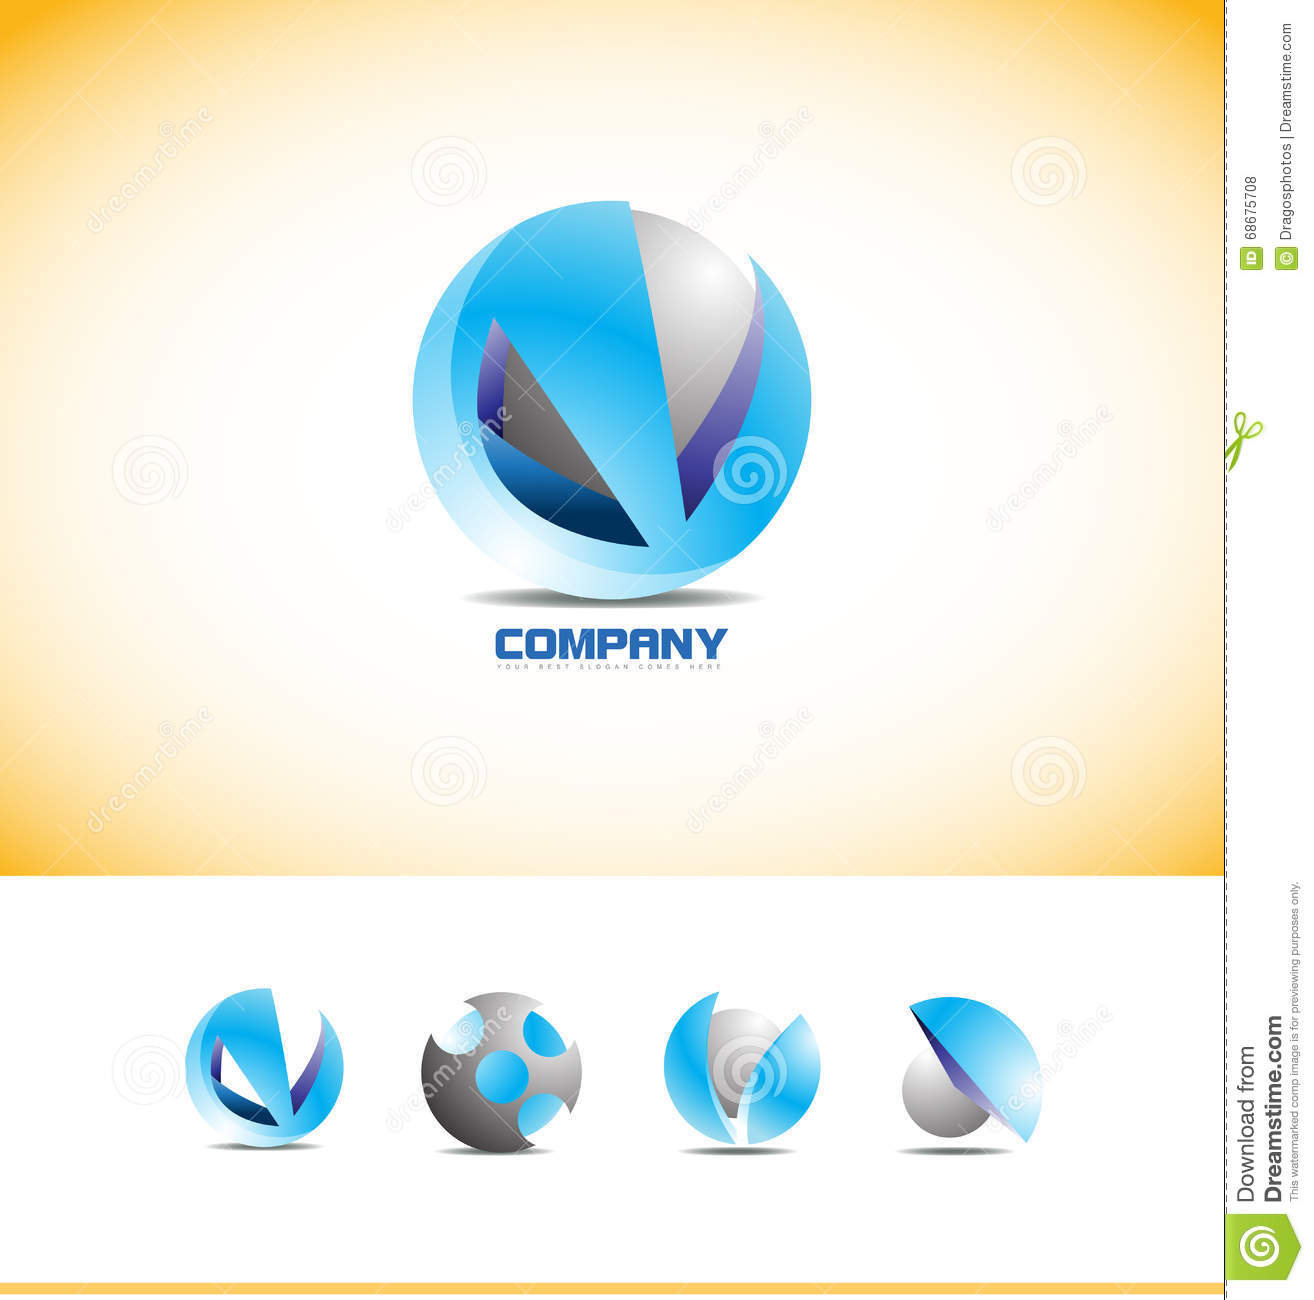 Sphere 3d logo design stock vector image of icon media for Global design company